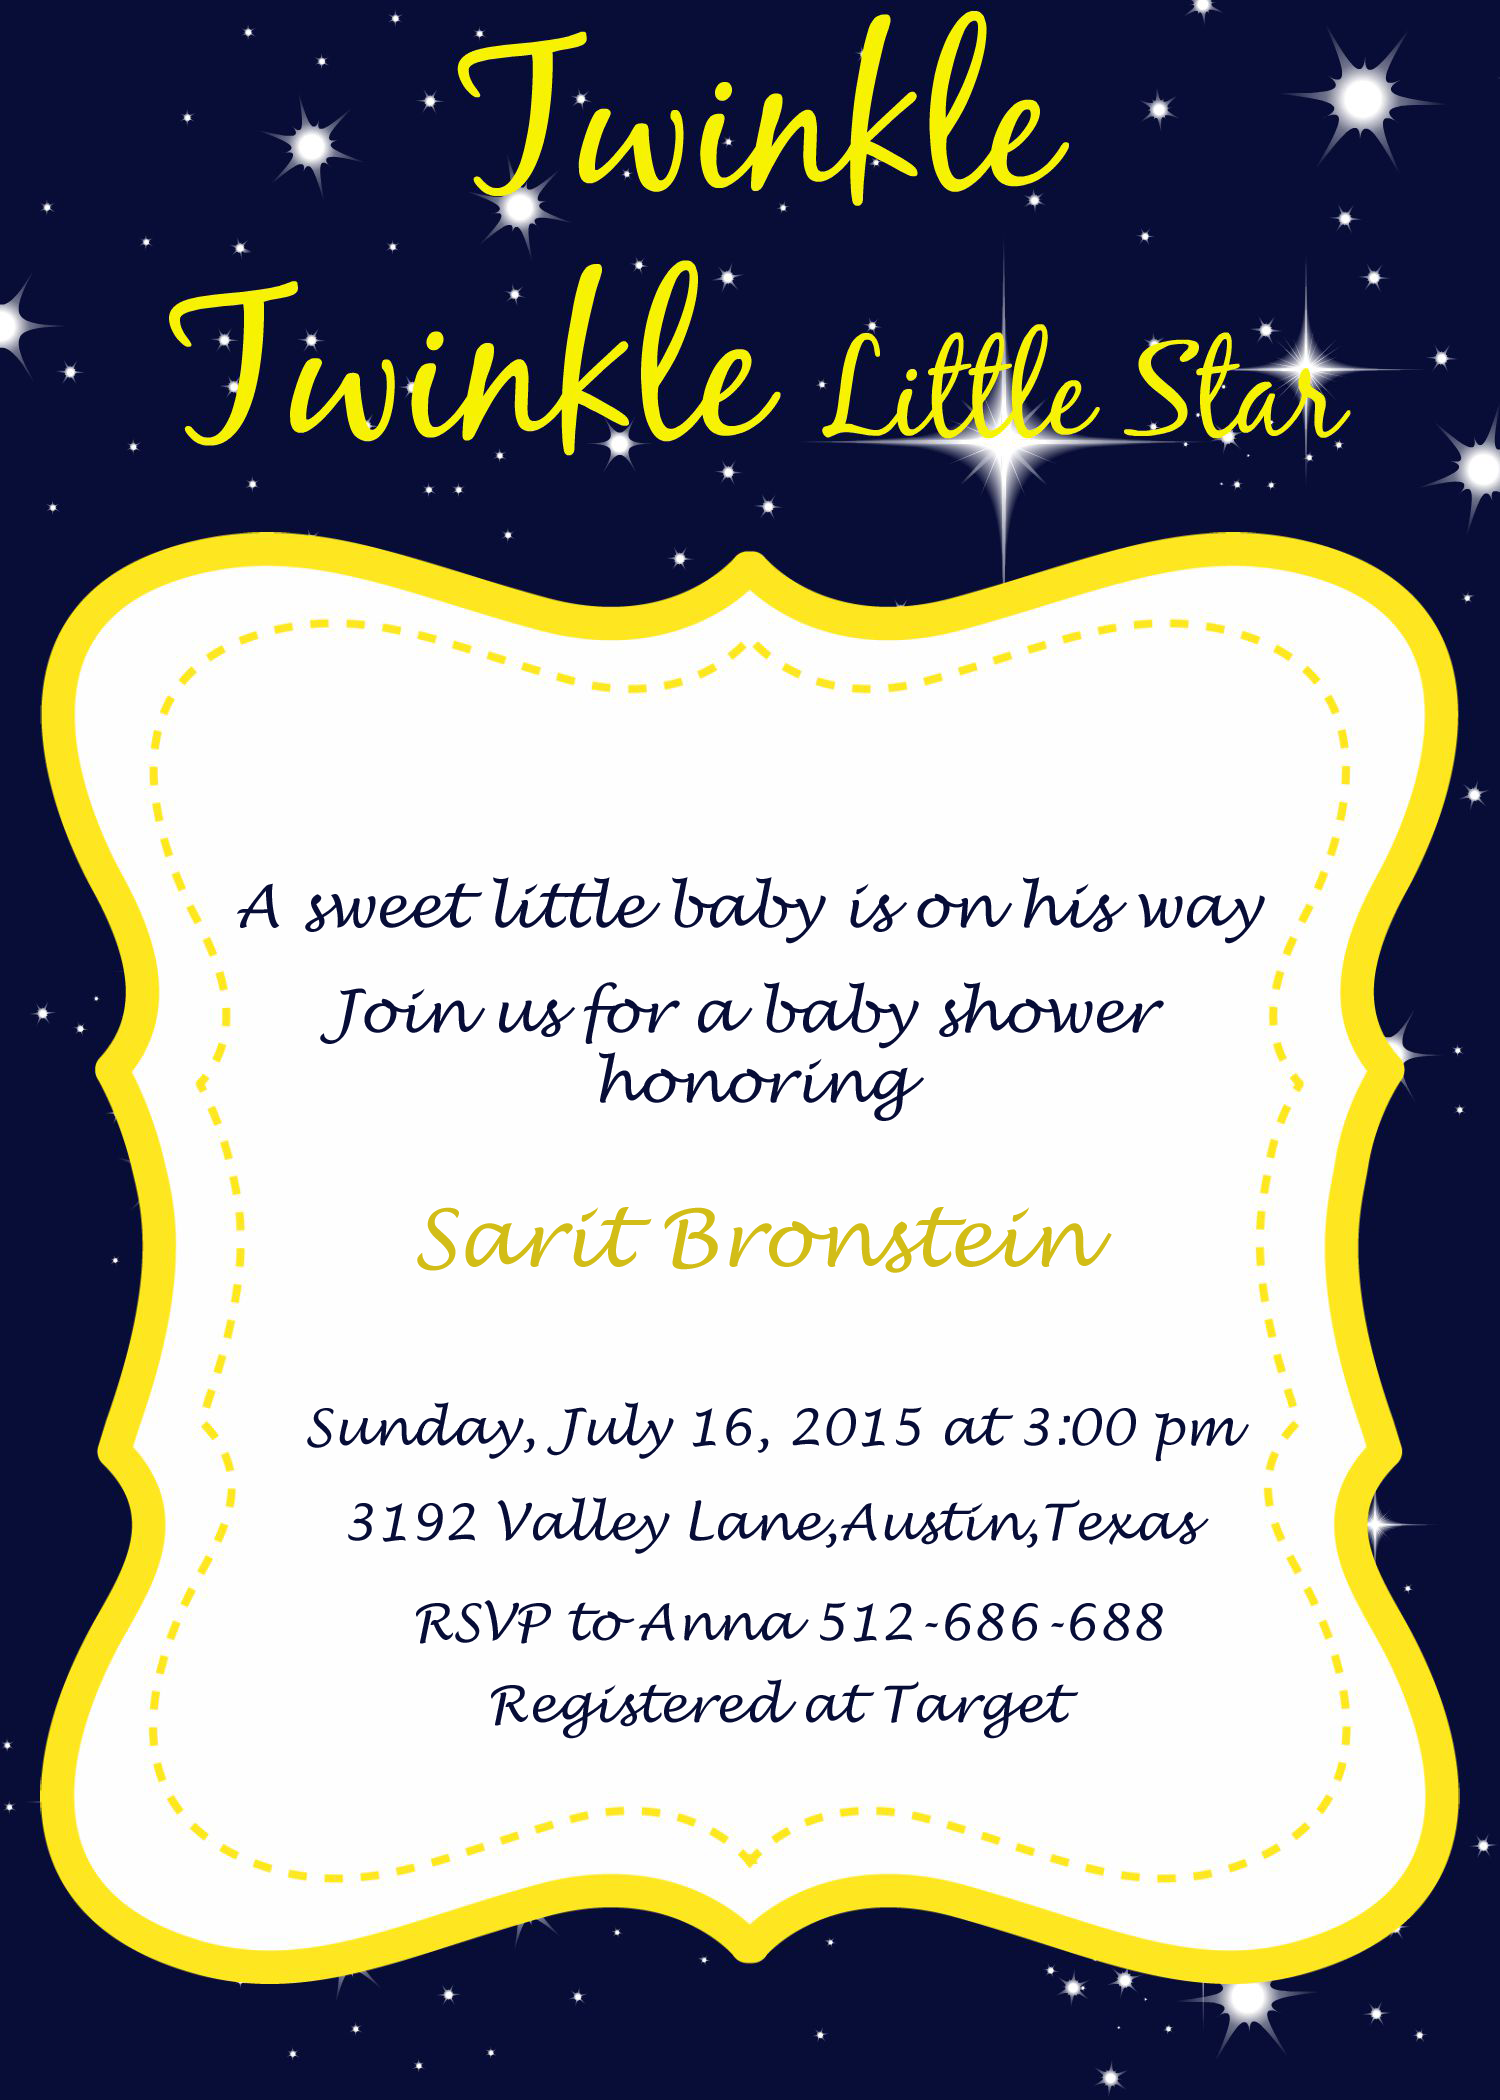 photograph about Free Printable Twinkle Twinkle Little Star Baby Shower Invitations referred to as Twinkle Twinkle Little one Shower Programs - My Hassle-free Youngster Shower